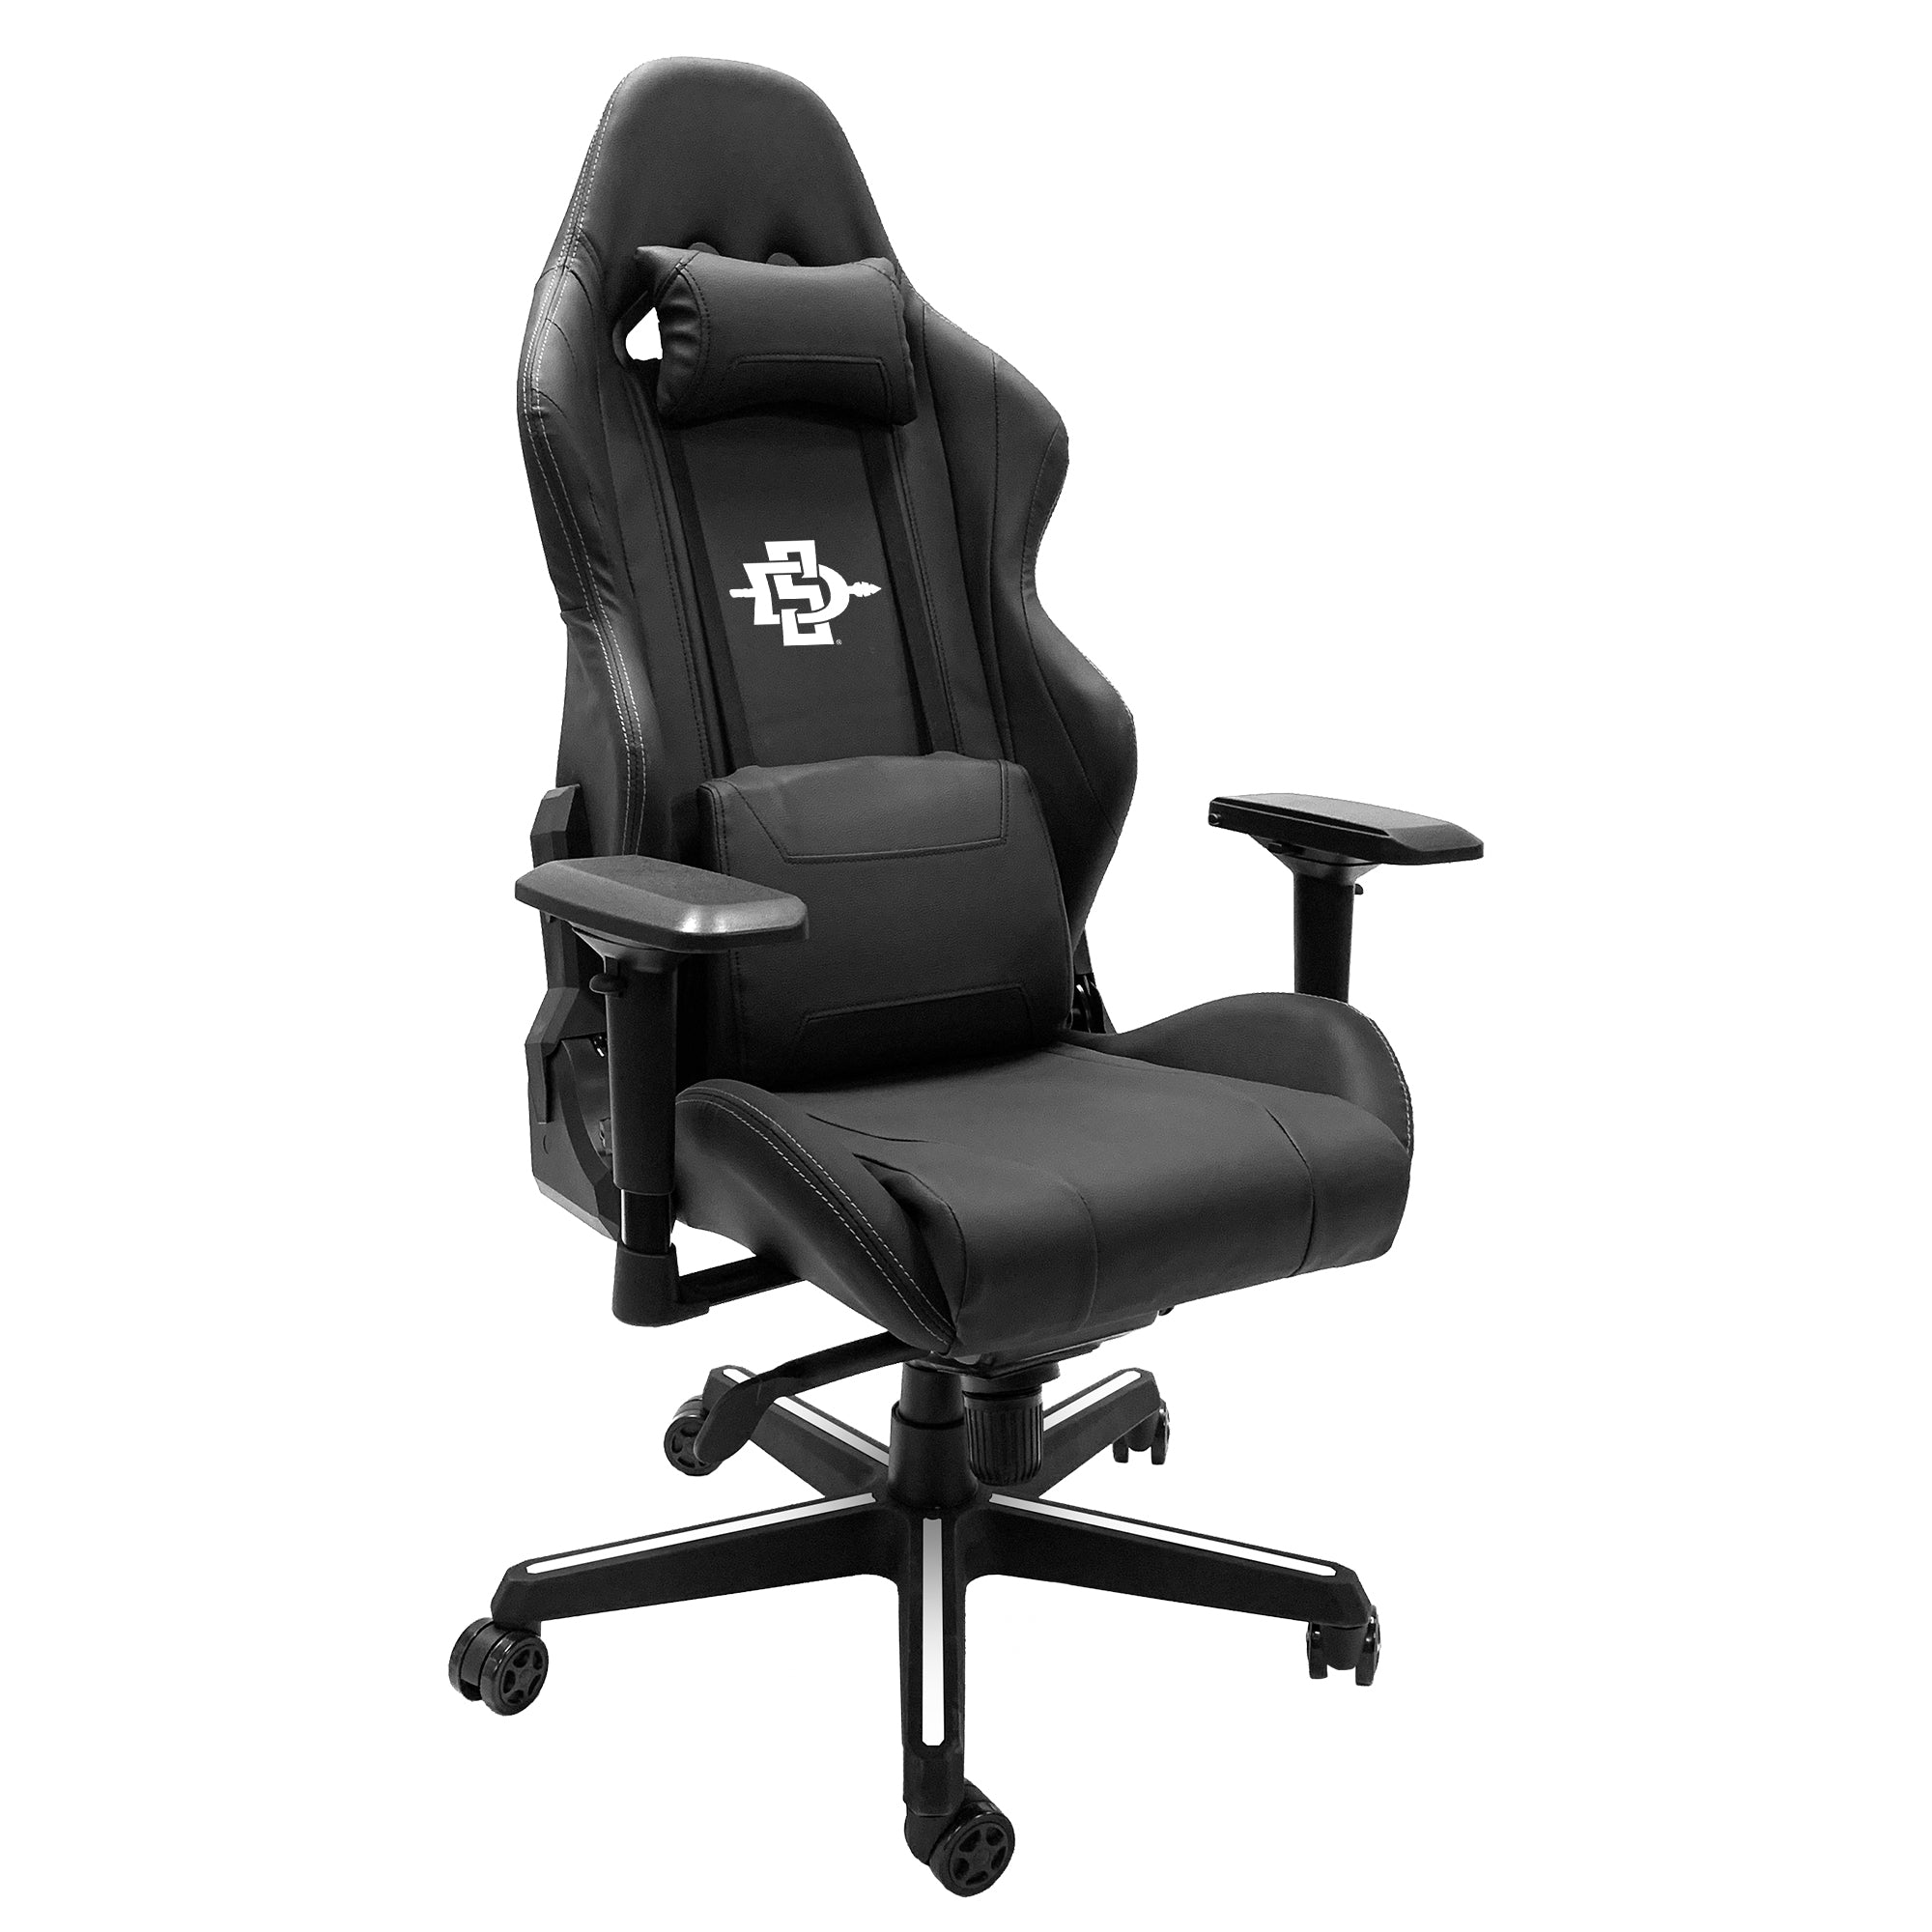 Xpression Gaming Chair with San Diego State Alternate